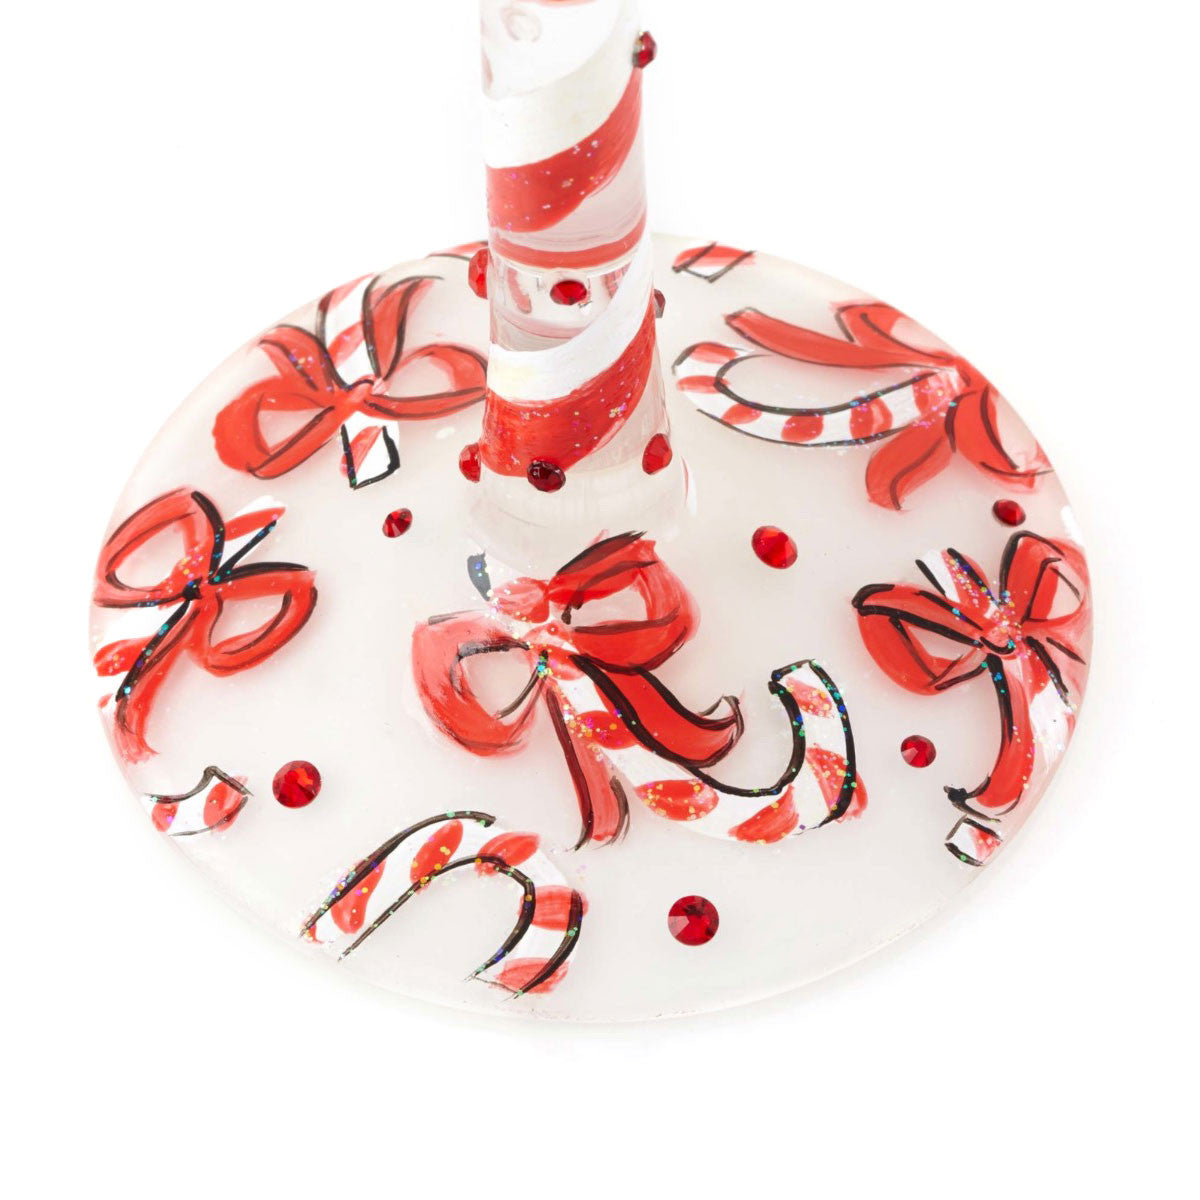 Glass candy cane ornaments - Wine Glass Candy Cane Dreams